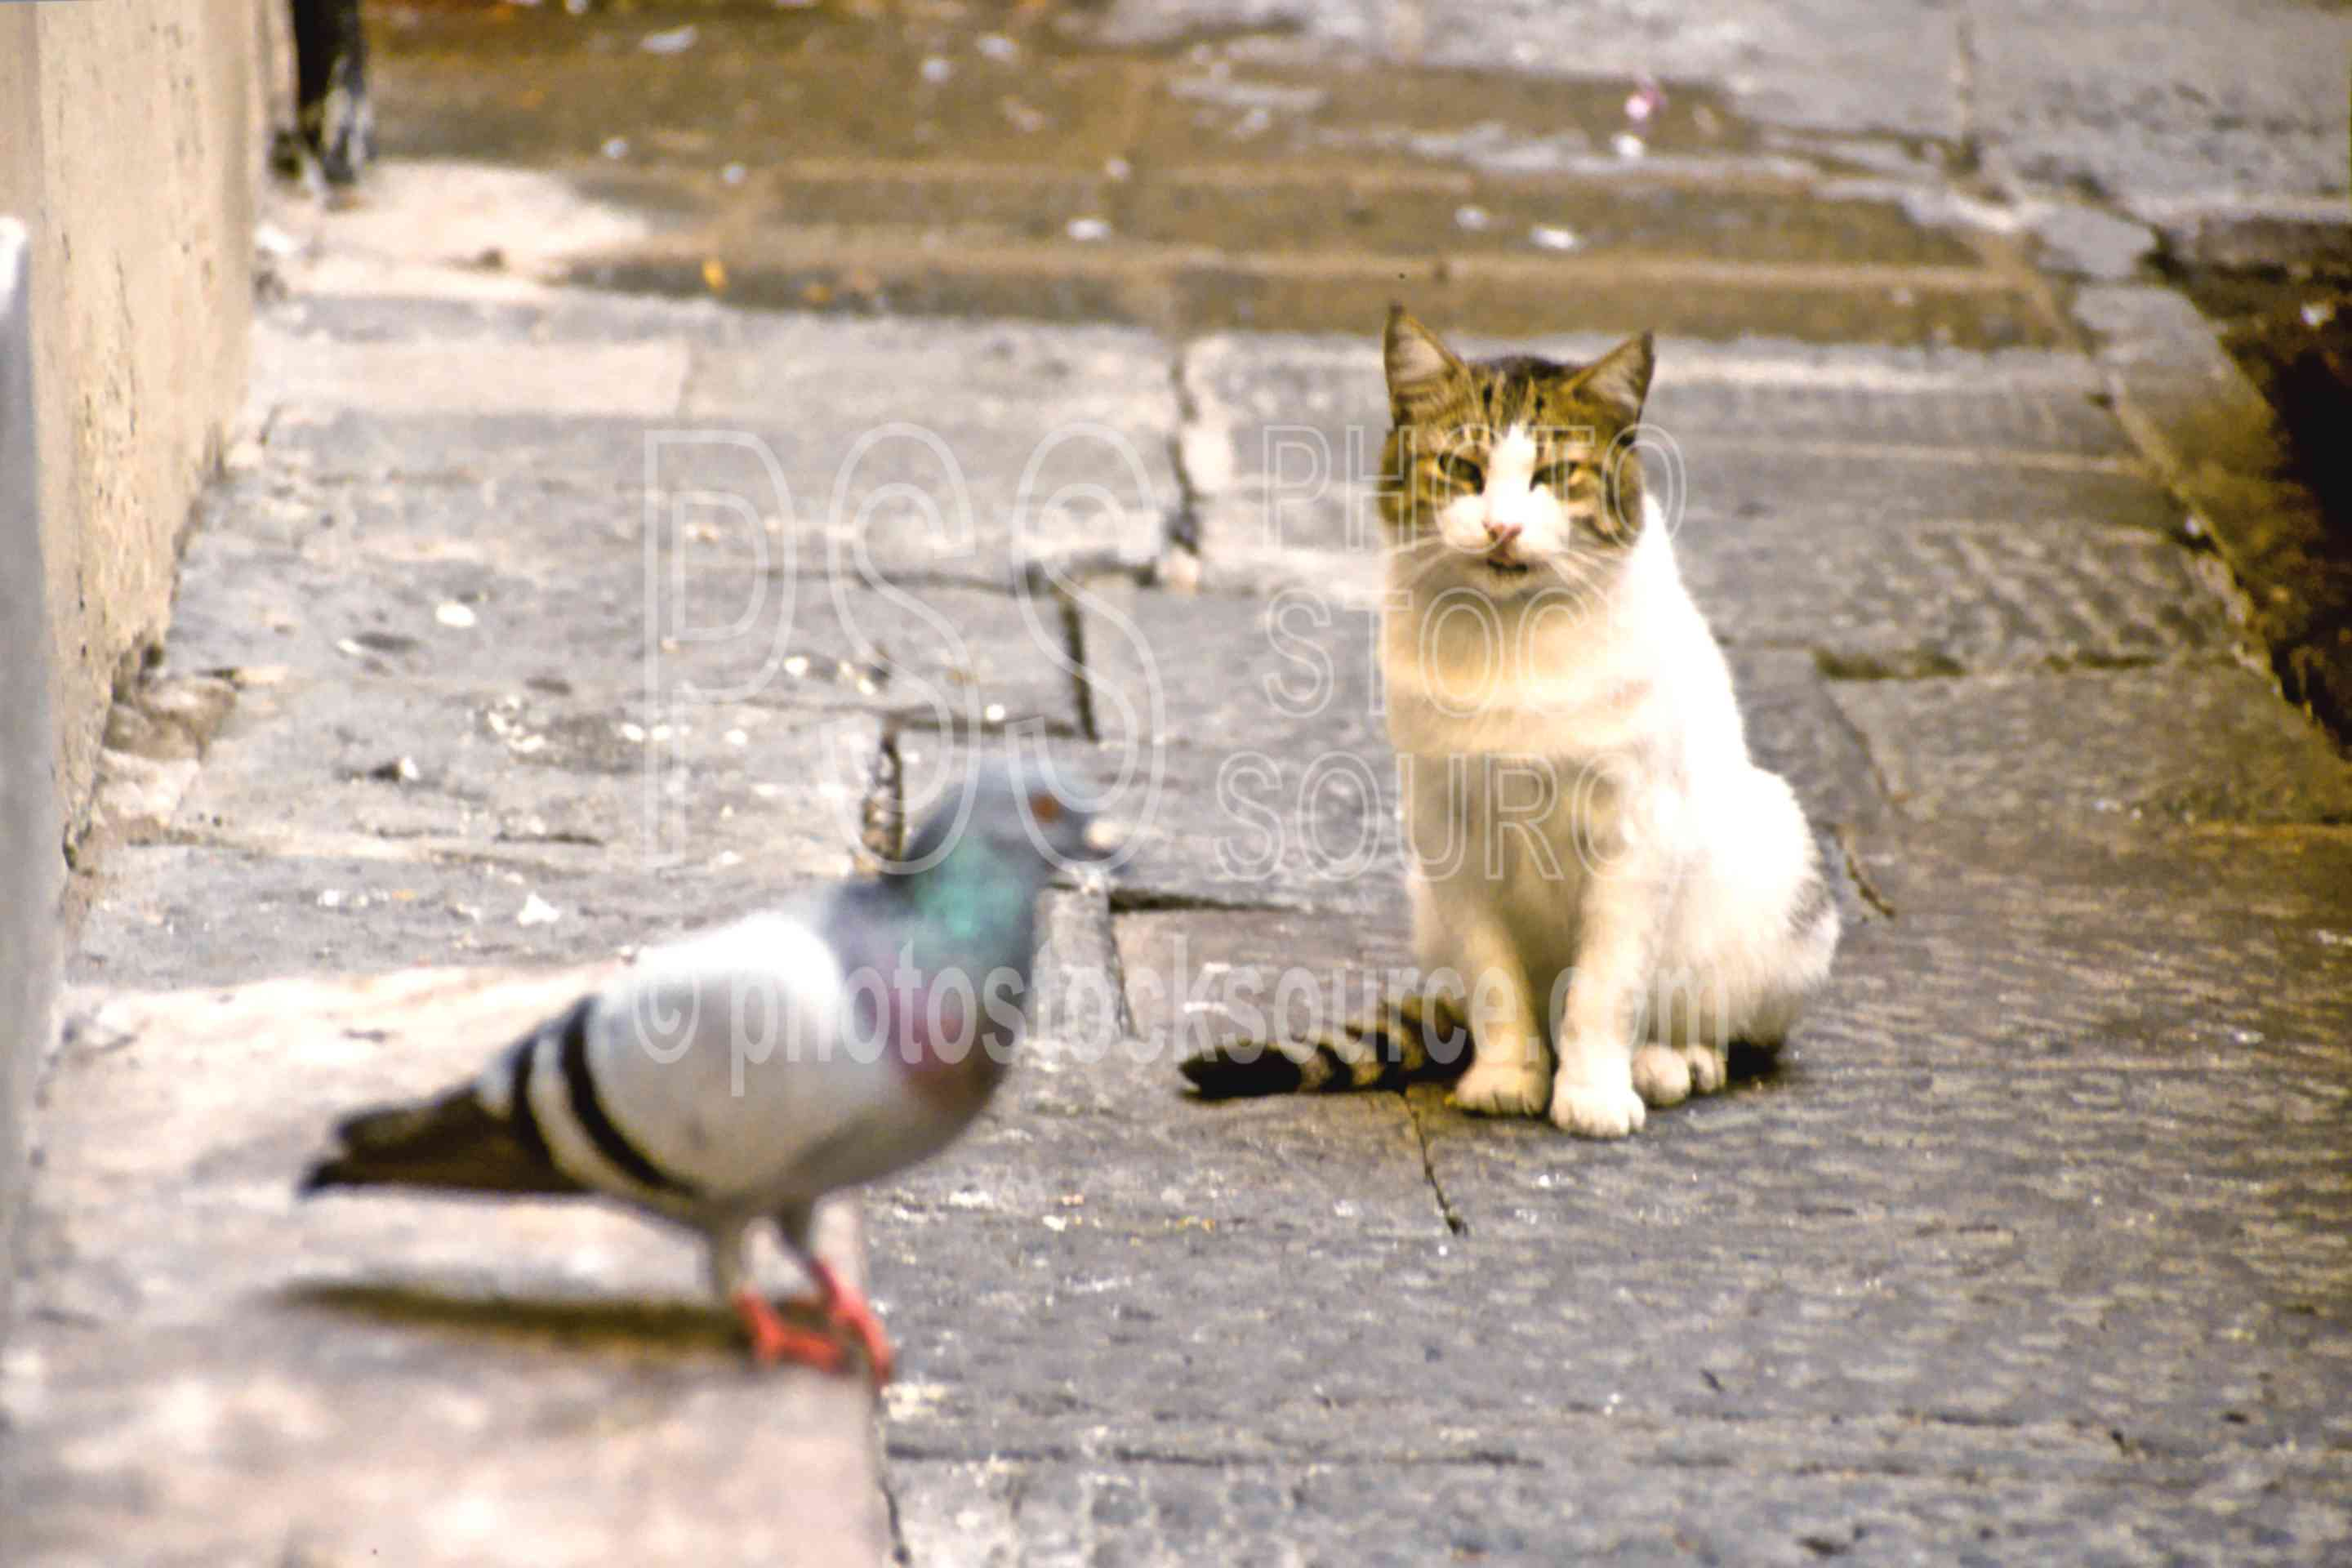 Potential Lunch,bird,cats,pigeon,animals